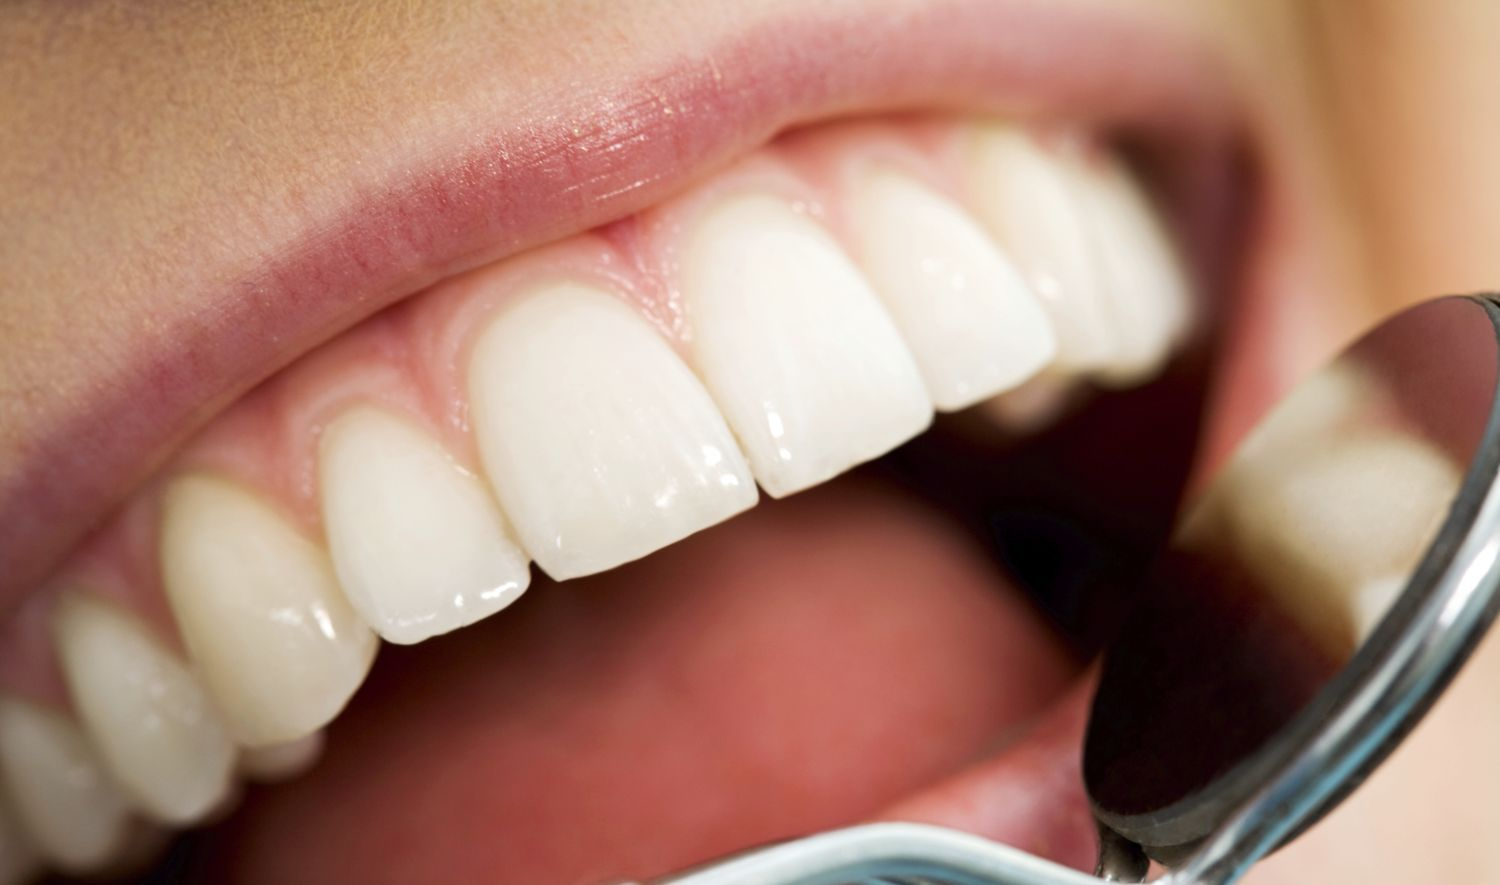 Healthy smile of patient visiting our dental practice in Winder, GA